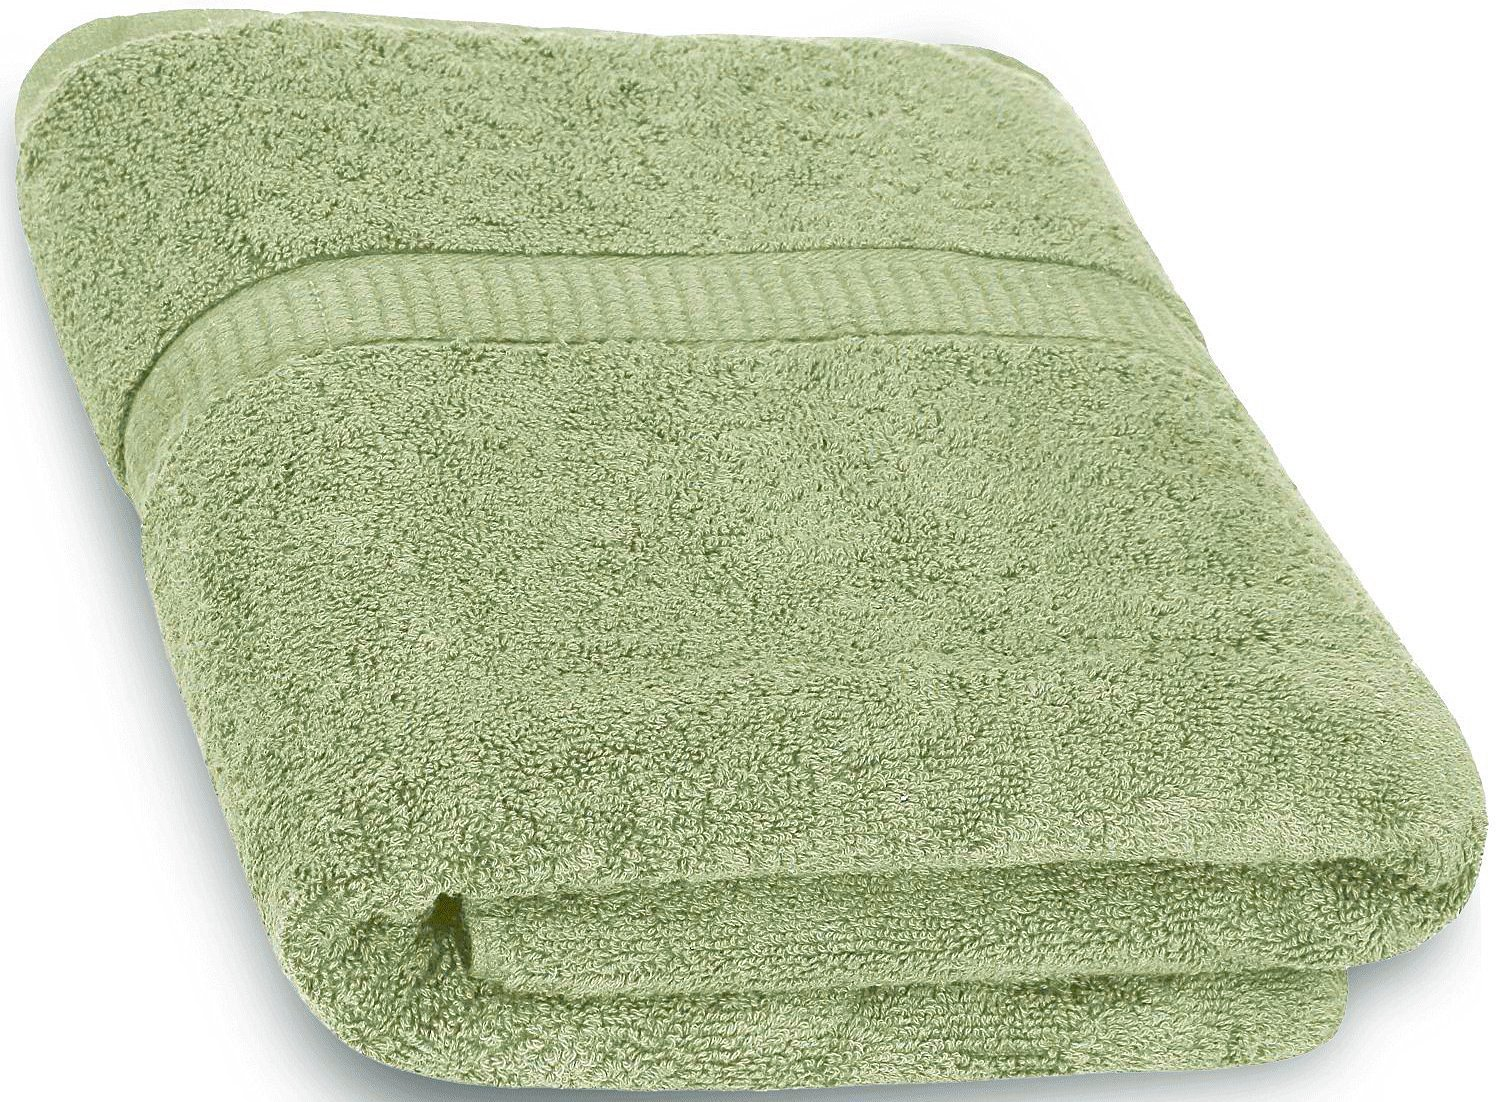 cotton bath towels sage green 30 x 56 inch luxury bath sheet perfect for home ebay. Black Bedroom Furniture Sets. Home Design Ideas